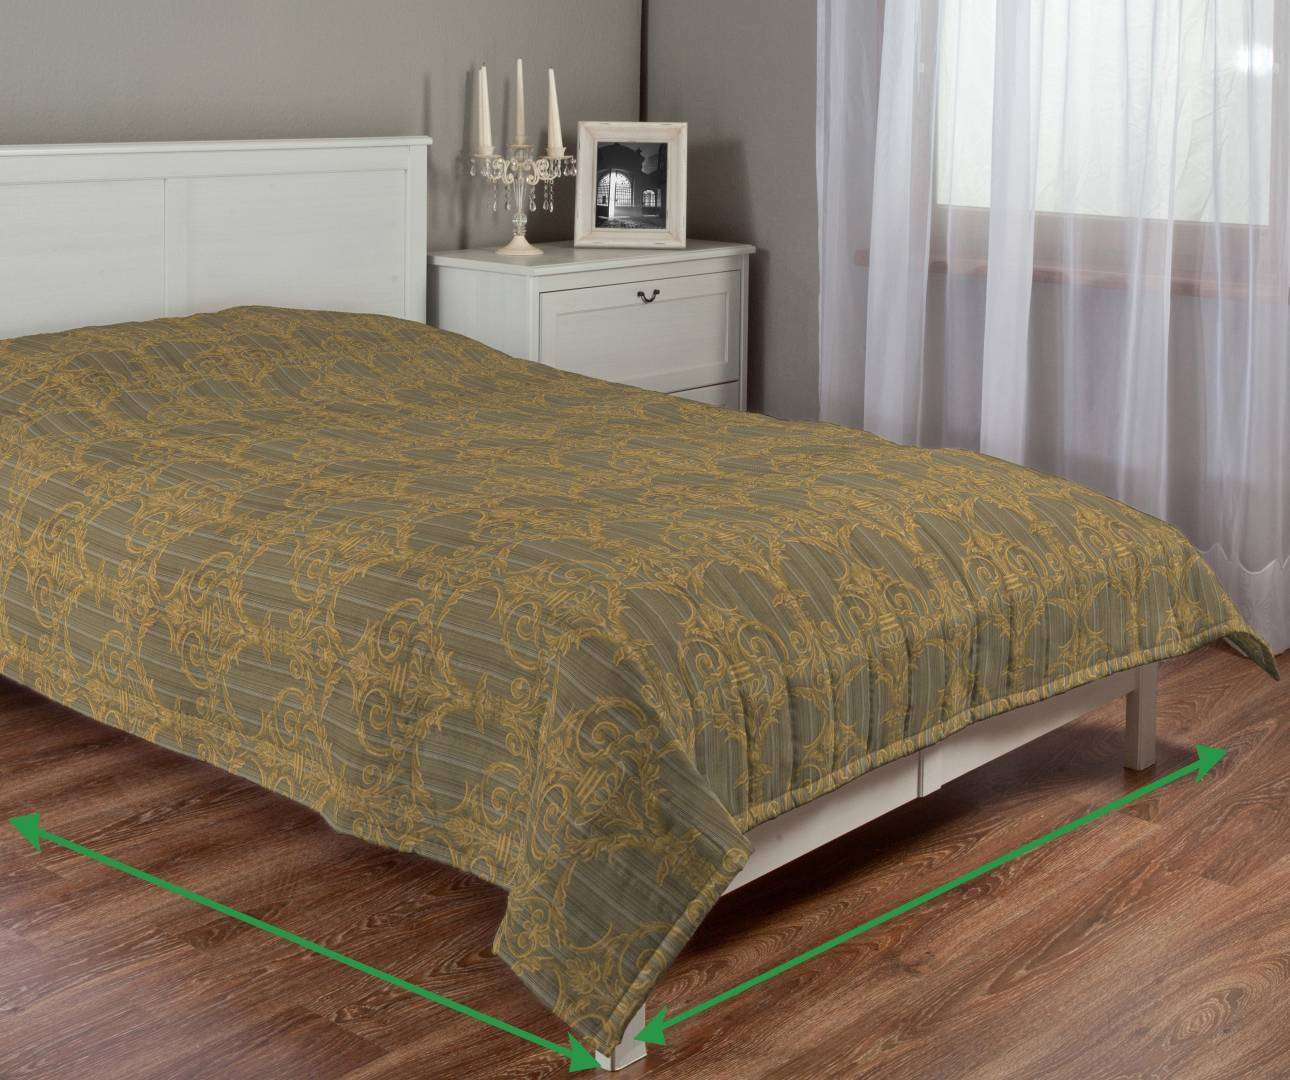 Quilted throw (vertical quilt pattern) in collection Odisea, fabric: 412-53